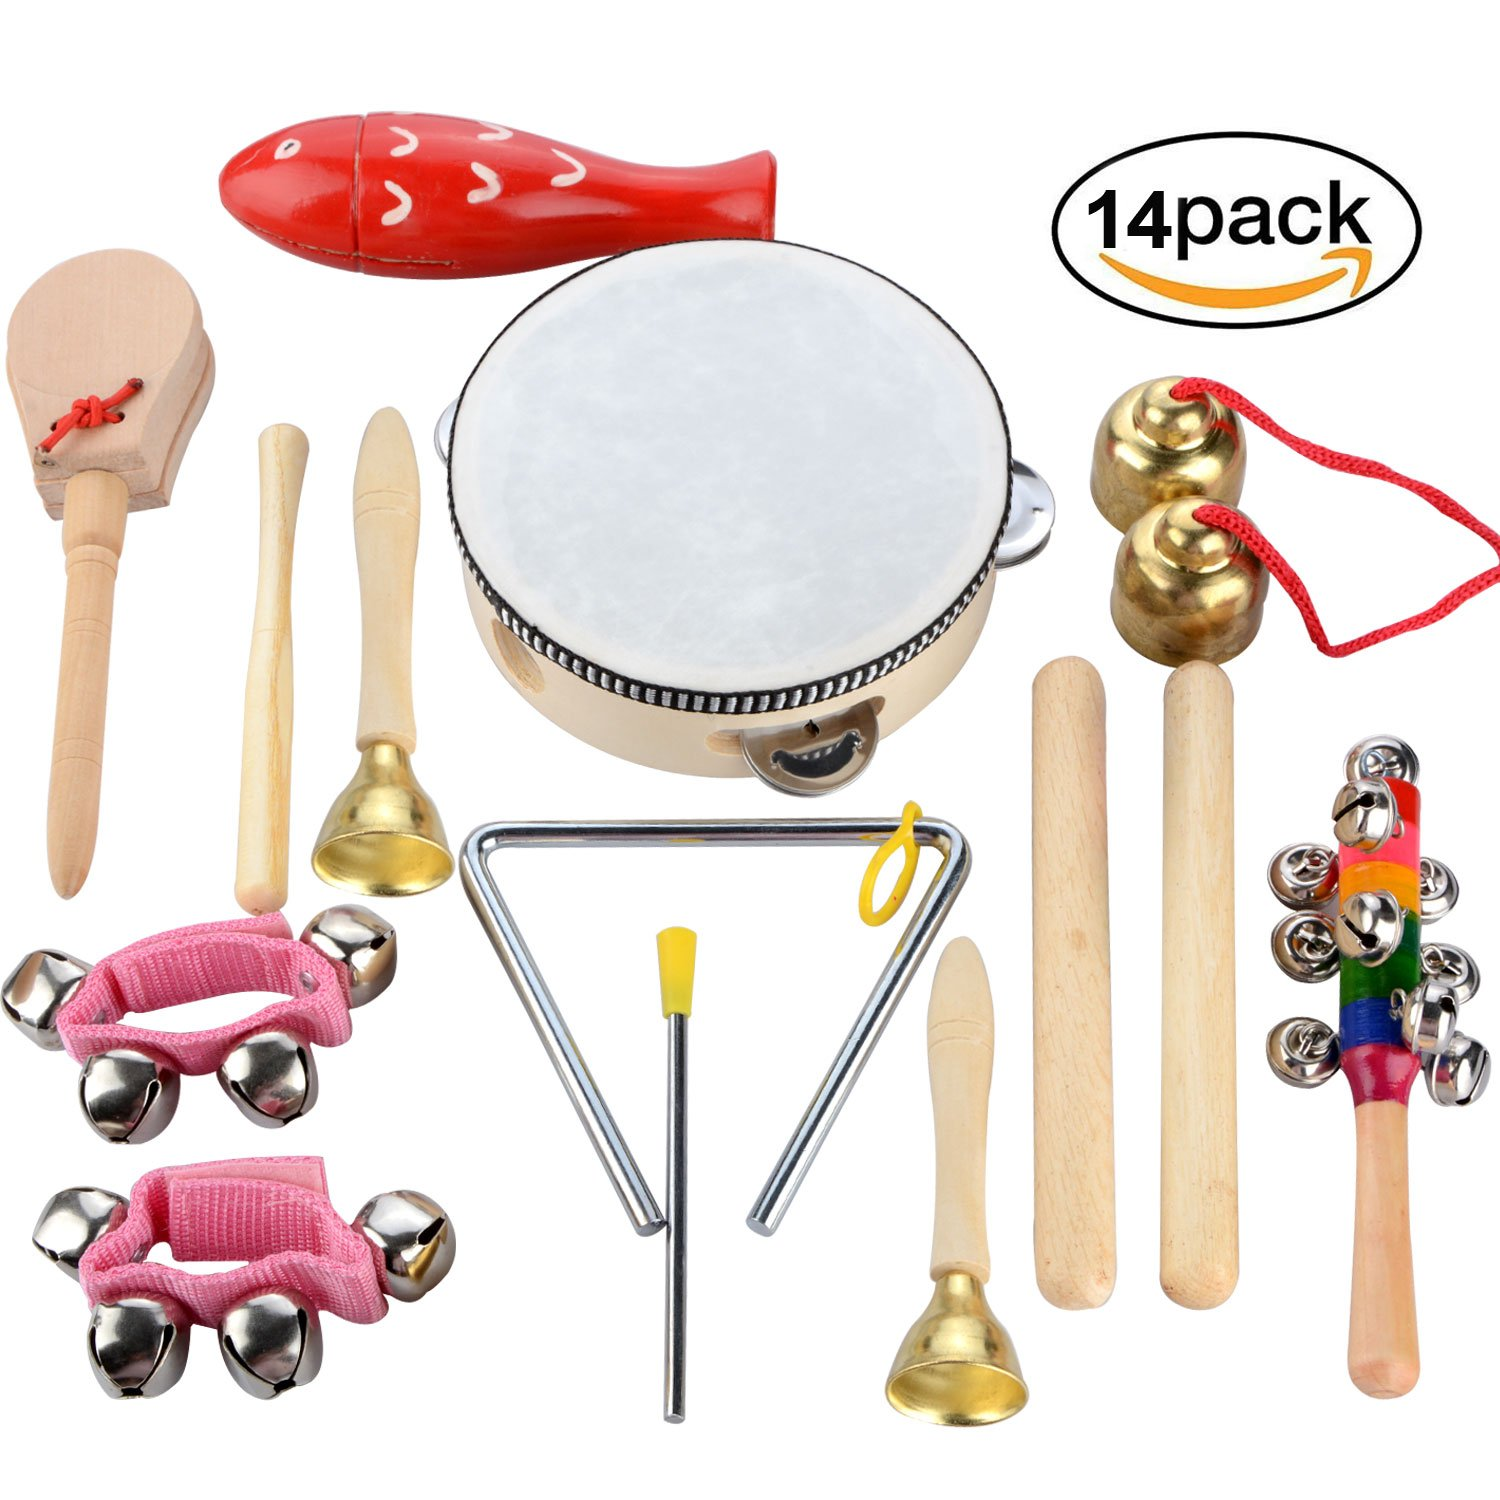 Povkeever 14 PCS Wooden Musical Instruments Set Percussion Toy